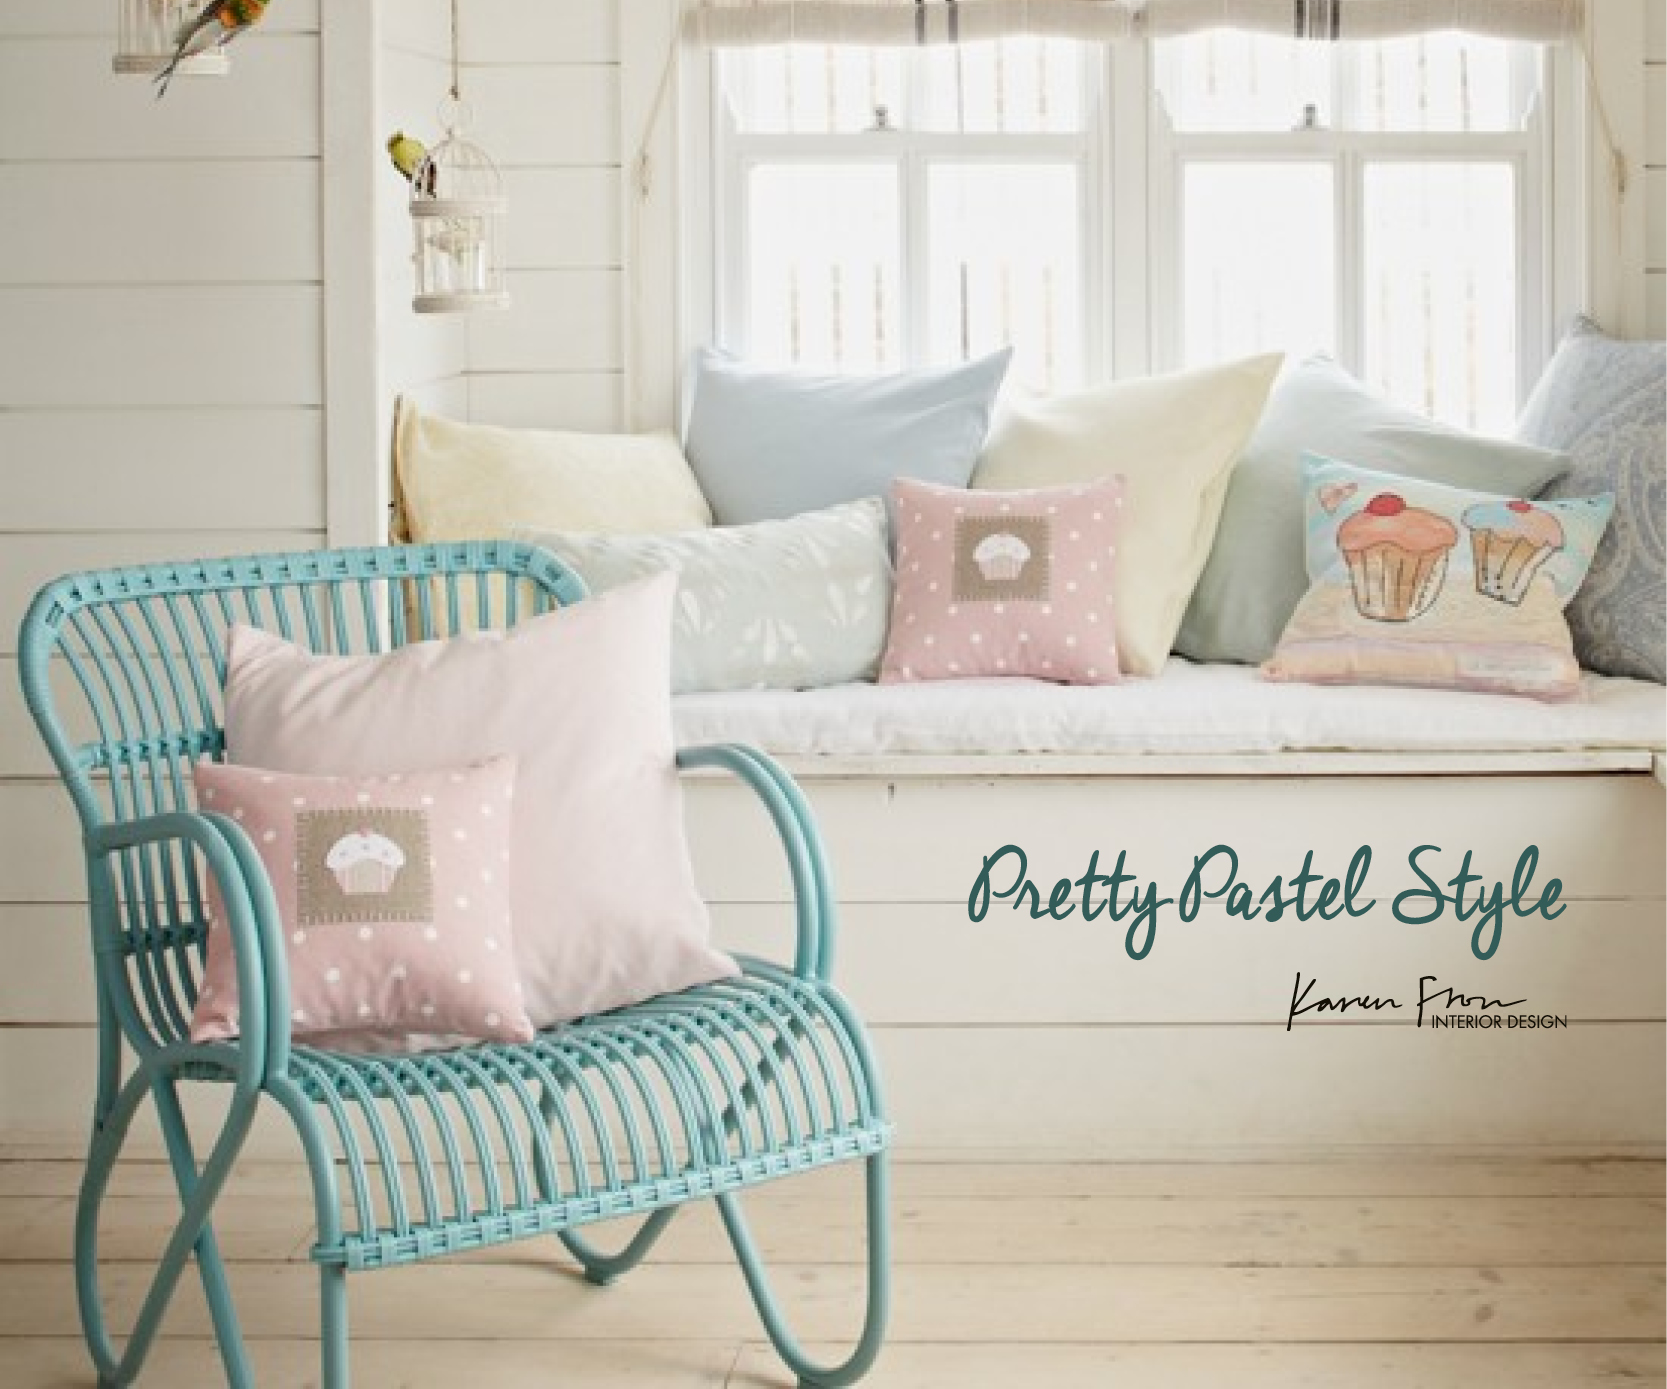 Colours of spring pretty pastel interiors karen fron interior design calgary for Pastel pink and yellow bedroom